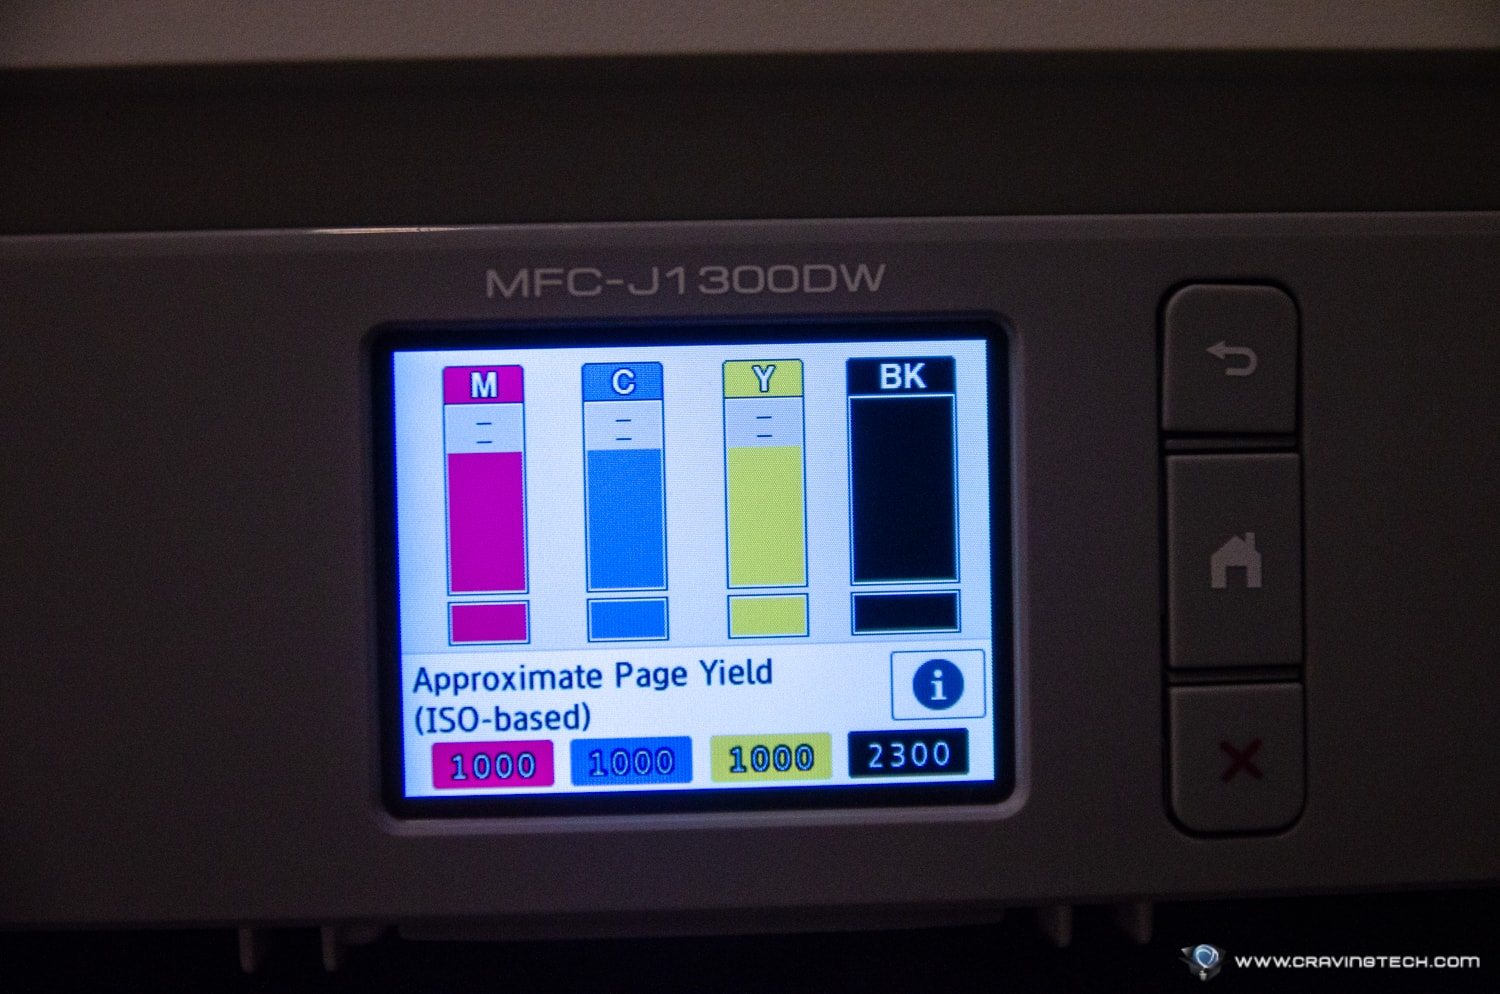 Brother MFC-J1300DW printer inks